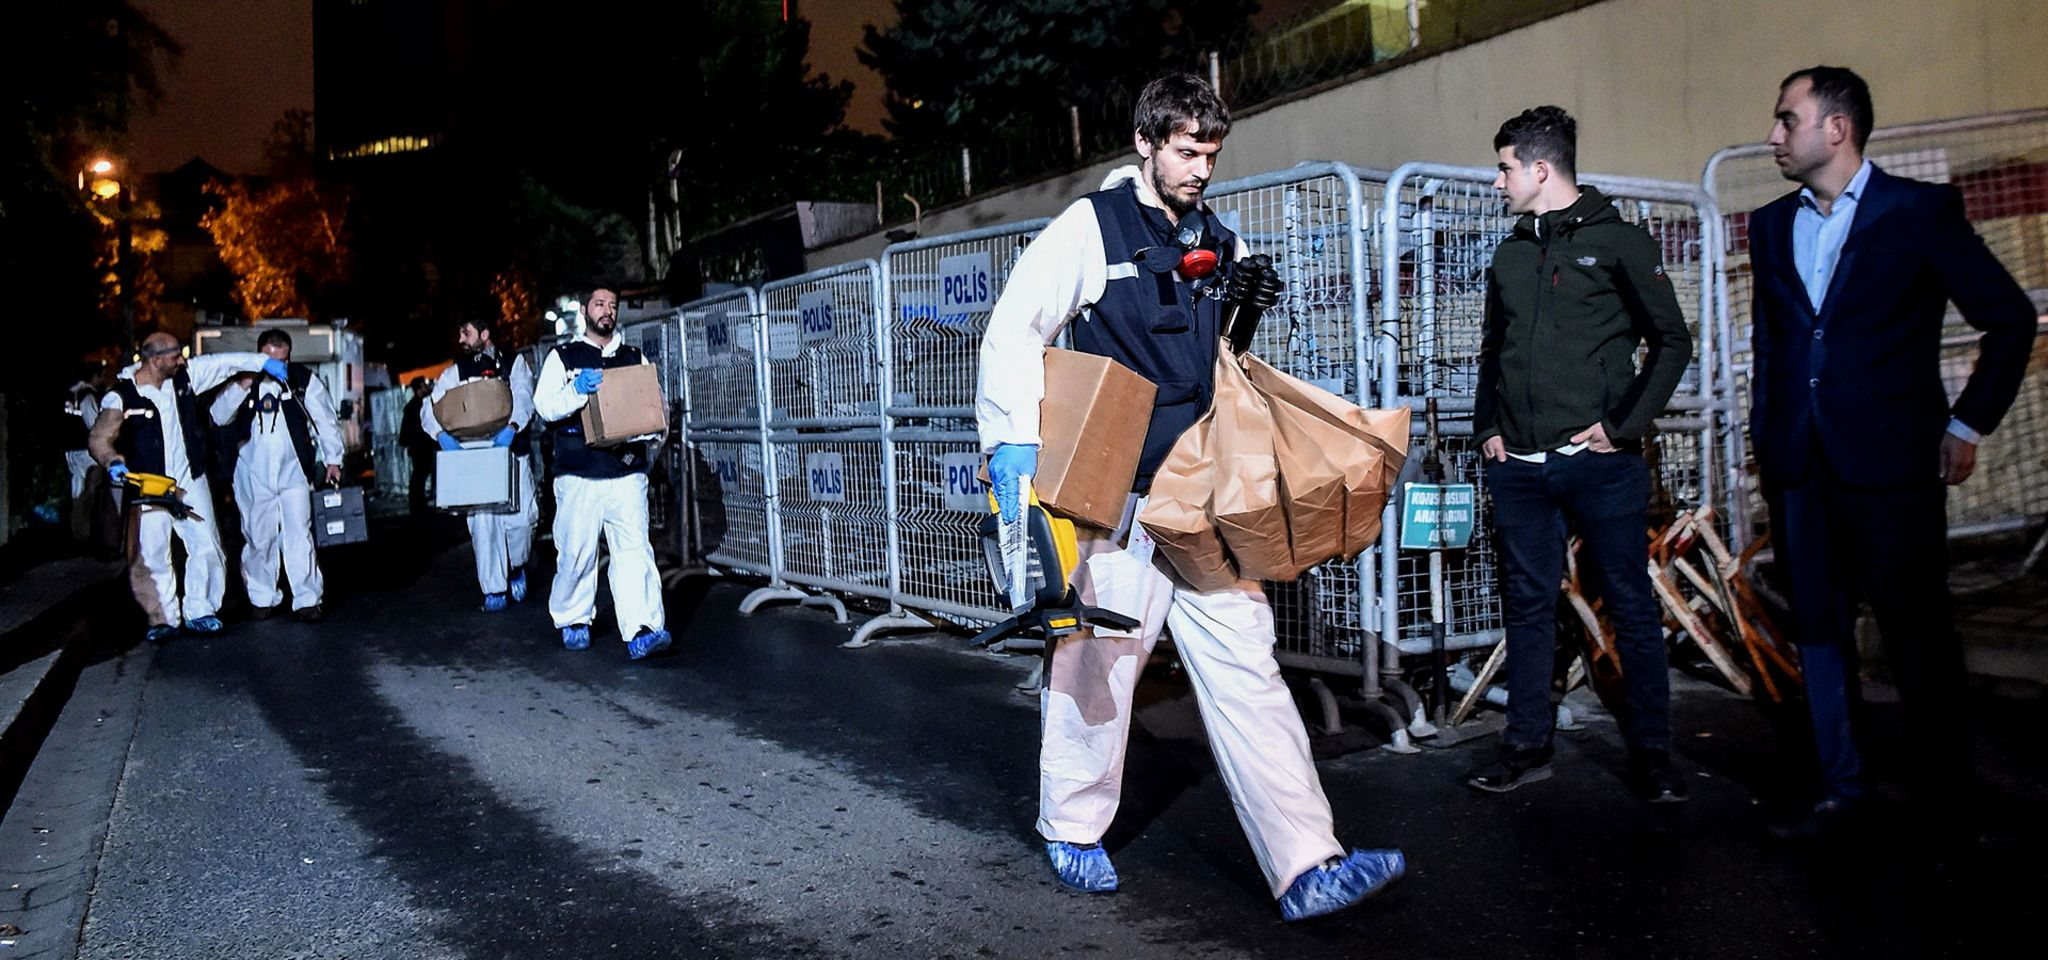 Turkish police forensic teams at the Saudi consulate in Istanbul